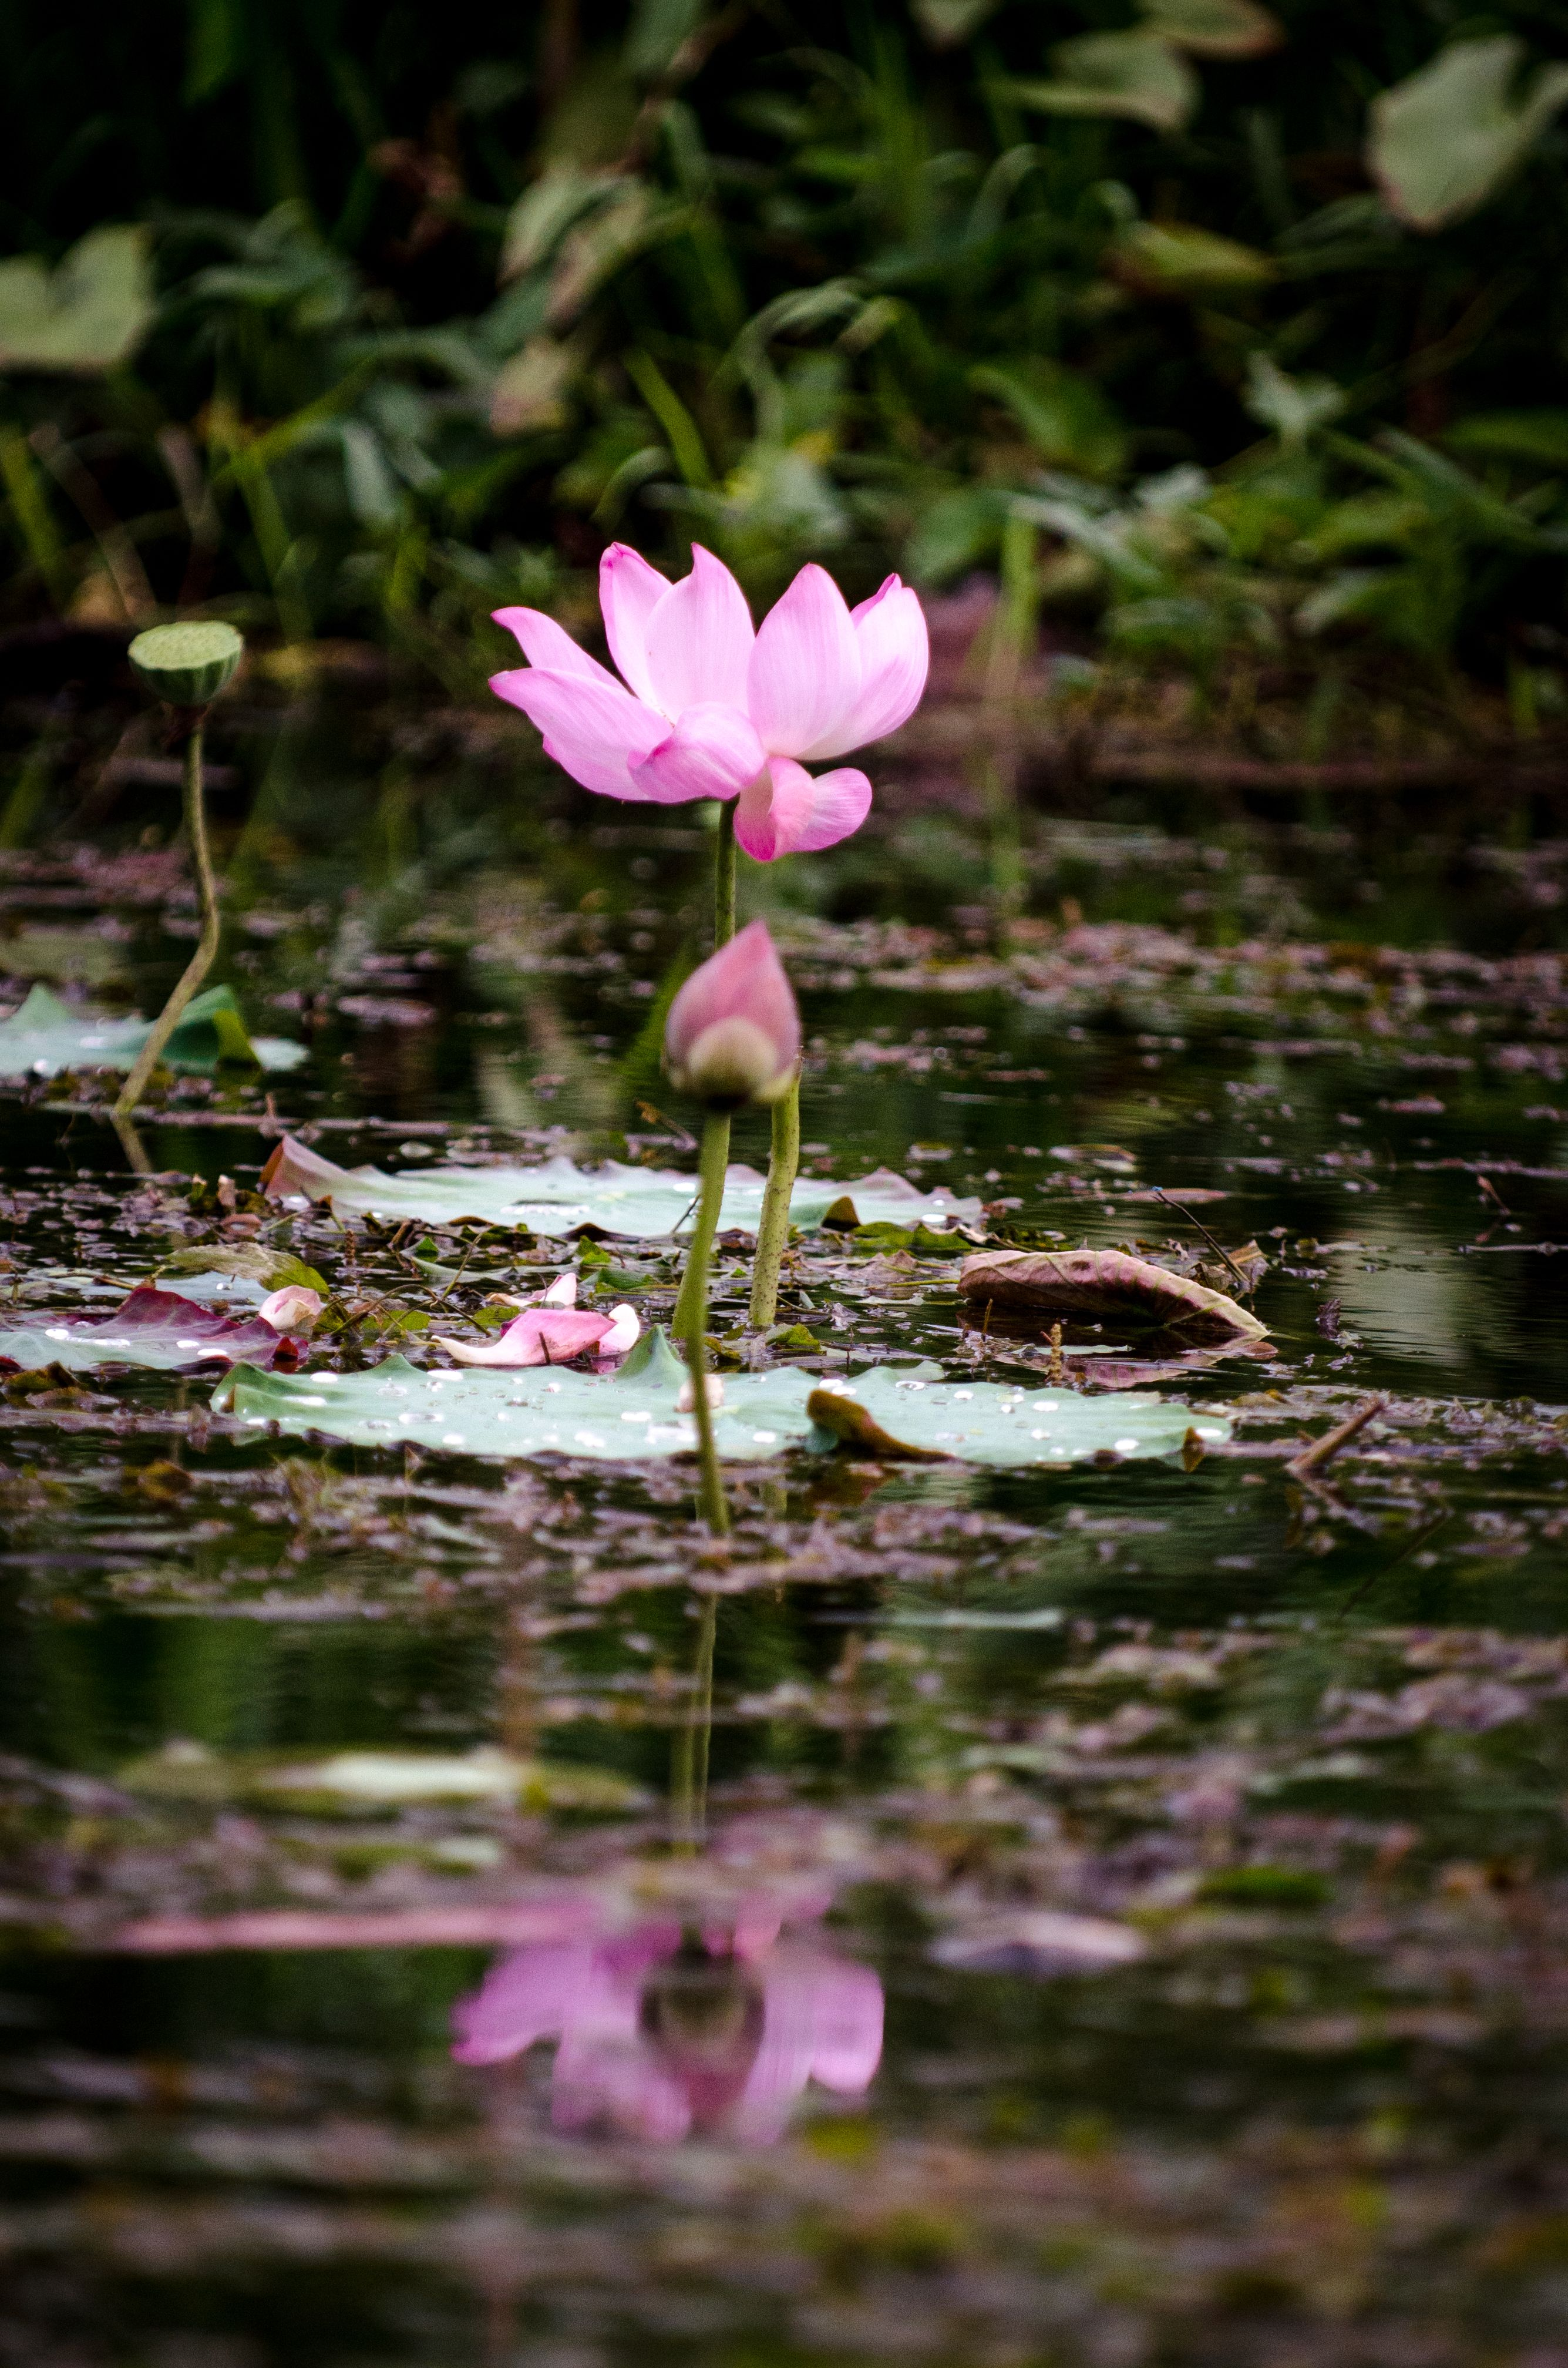 The Thai Lotus flower; a symbol of love and transformation